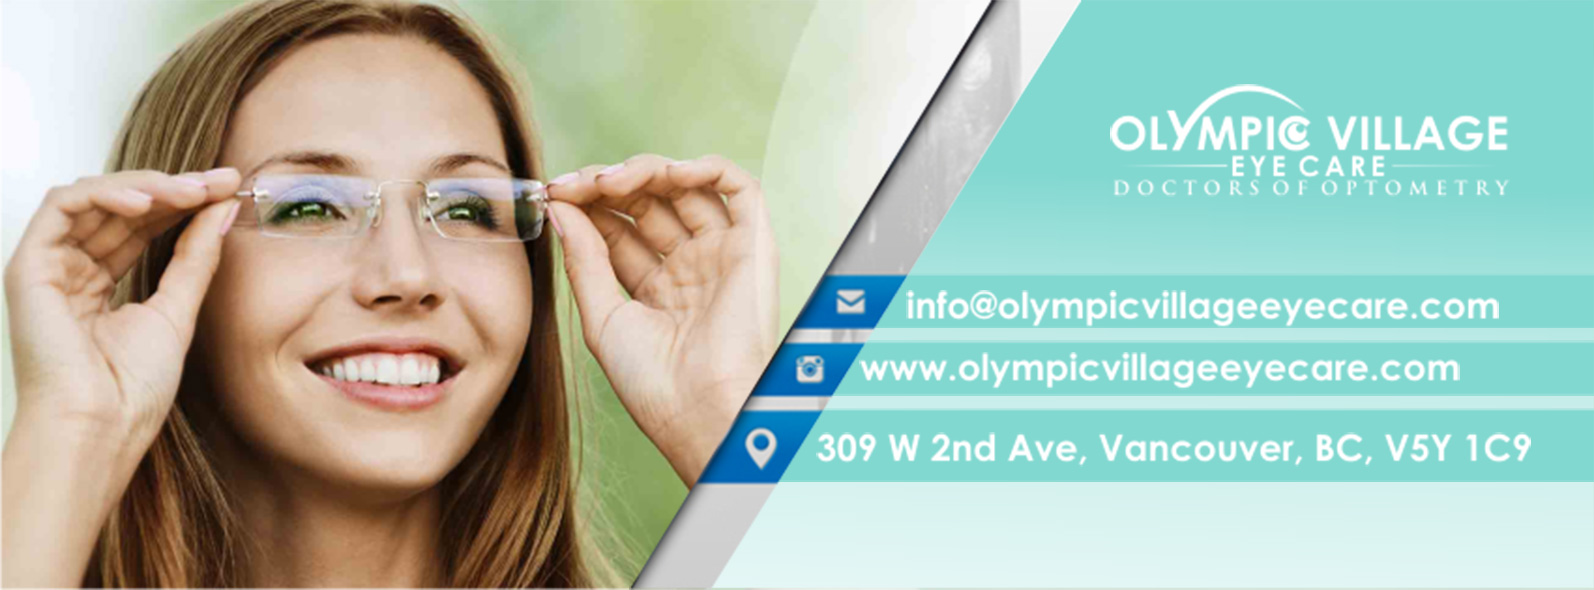 Olympic-Village-Eye-Care